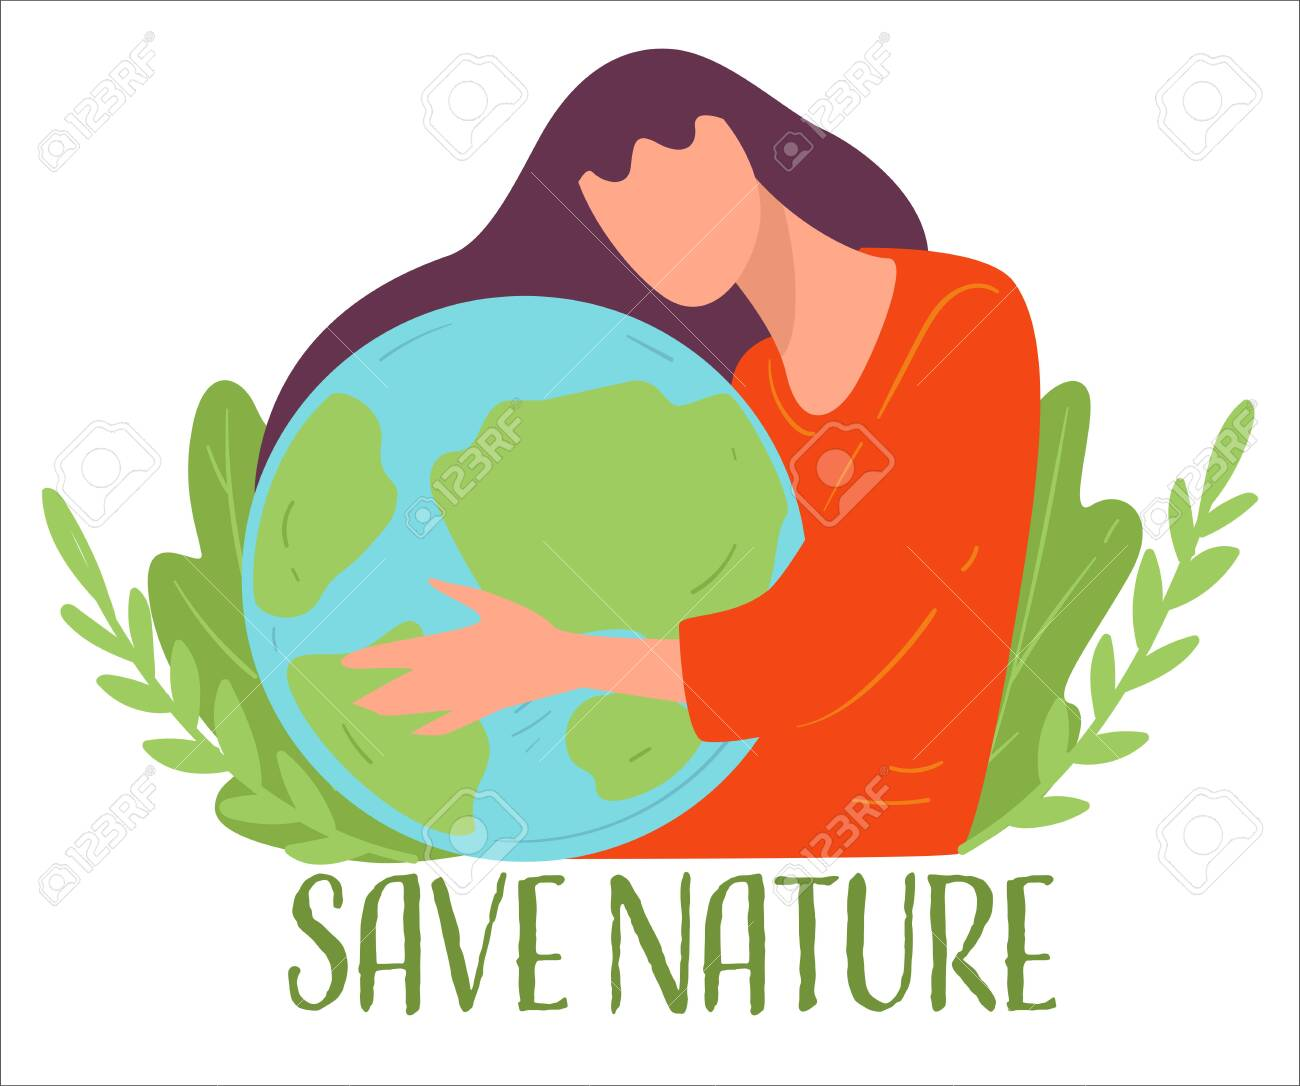 Save nature, eco friendly woman protecting planet vector - 152195684